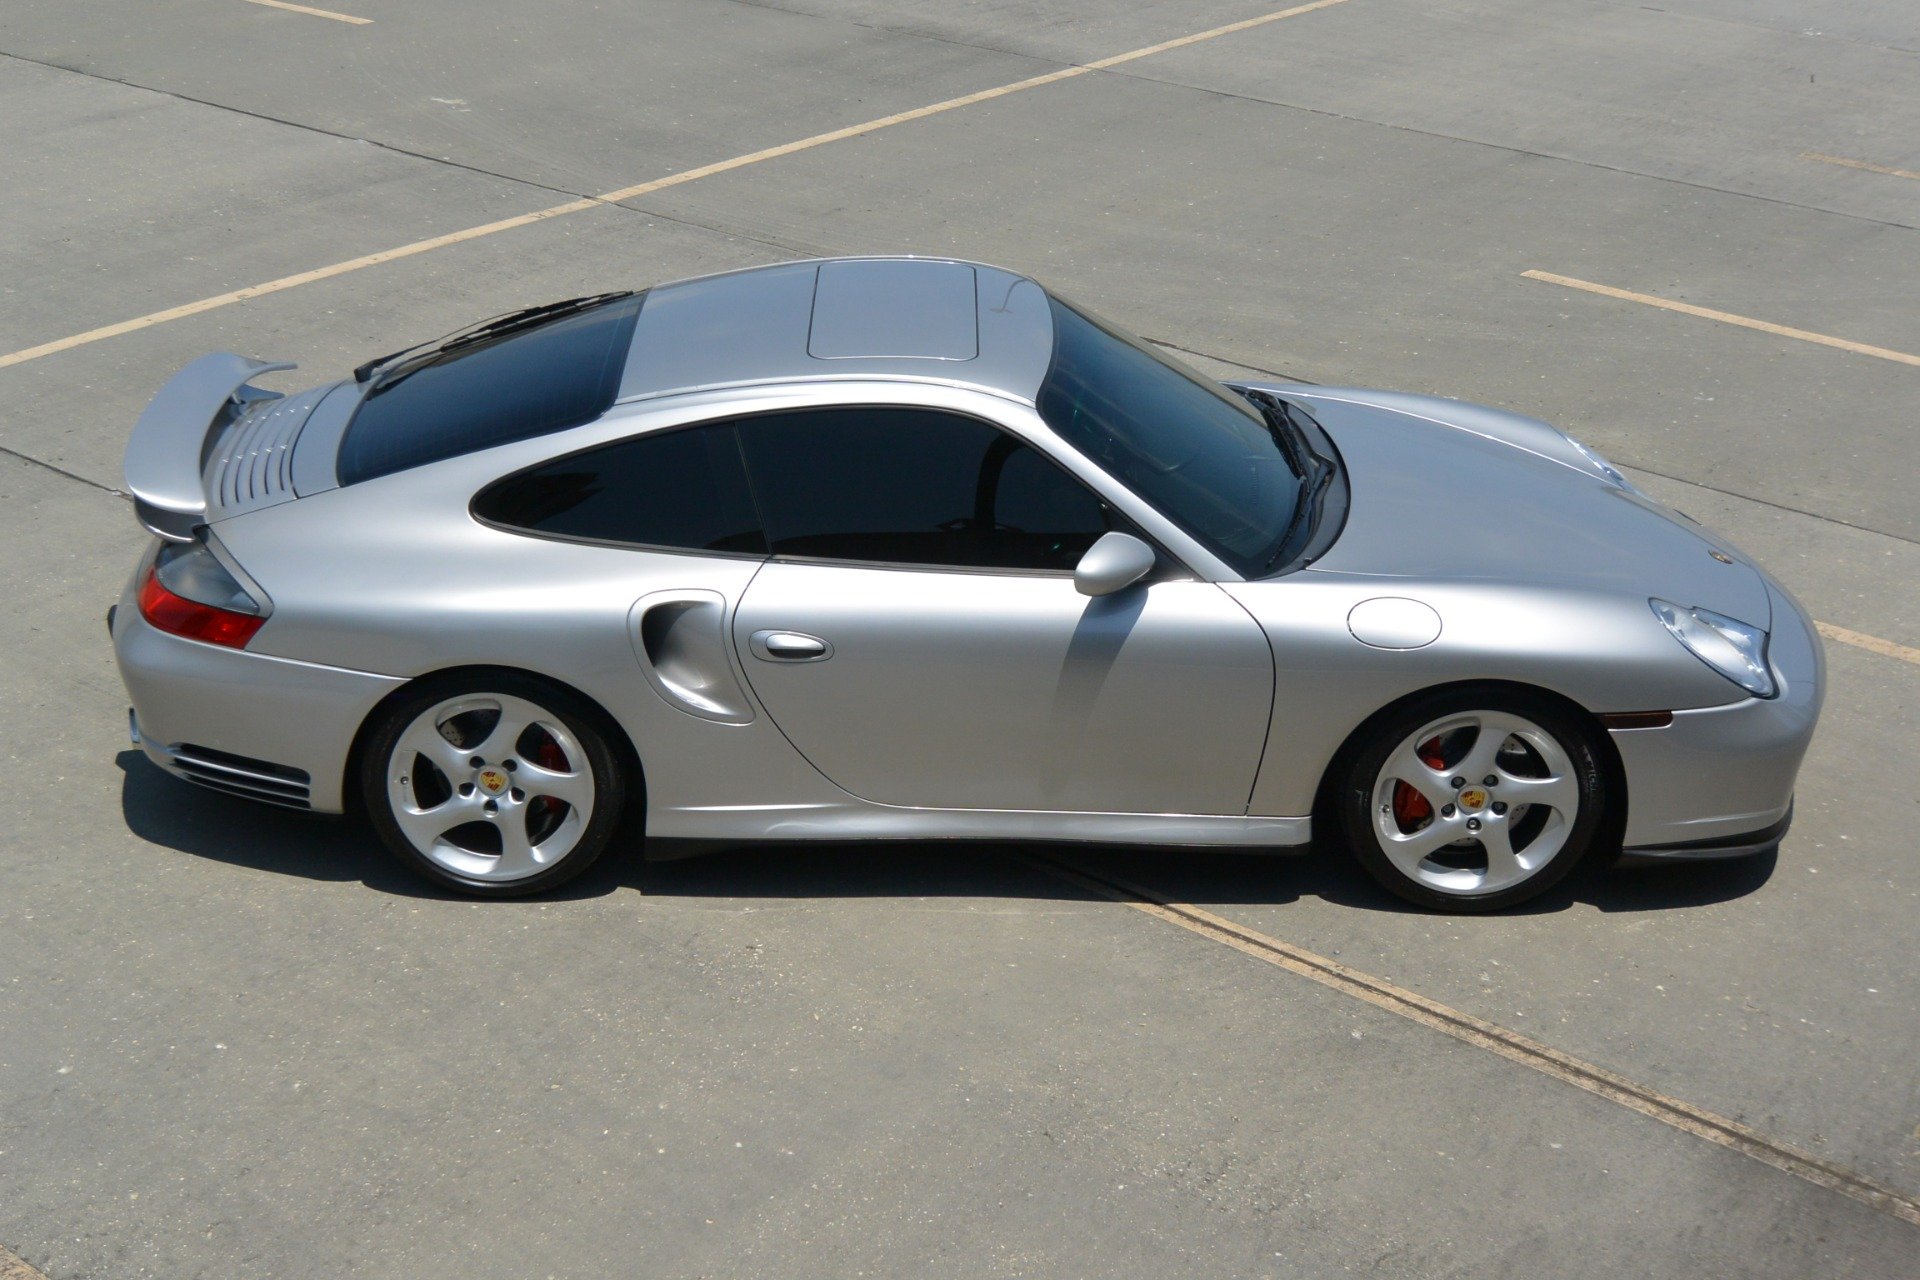 2001 porsche 911 carrera turbo stock c1s687085 for sale near jackson ms ms porsche dealer. Black Bedroom Furniture Sets. Home Design Ideas